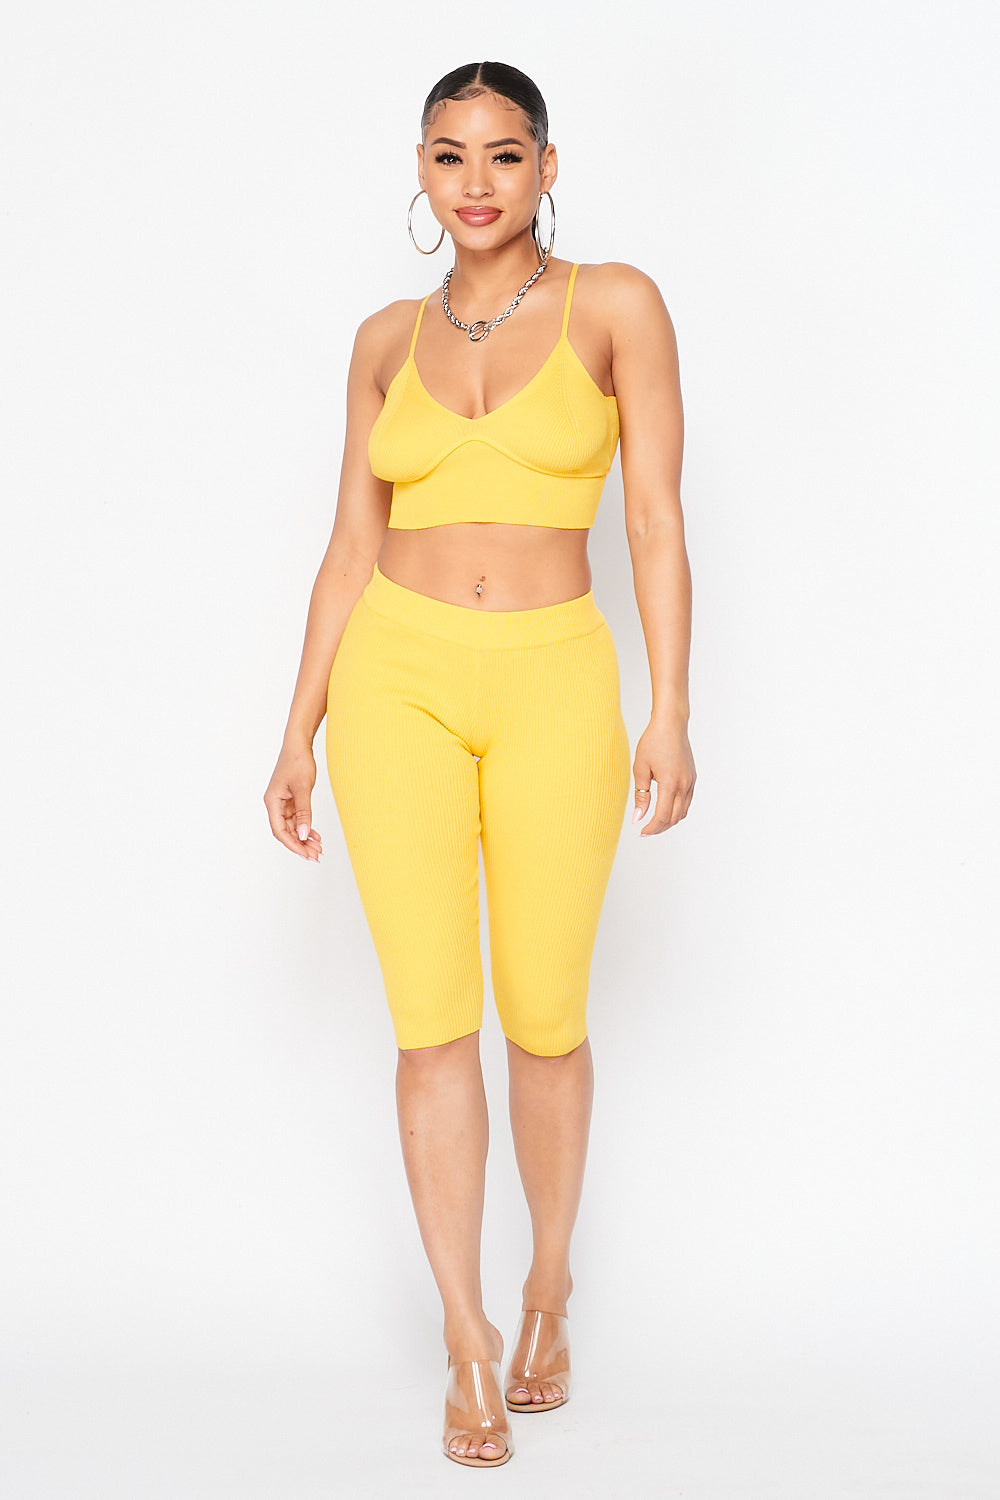 Spaghetti Strap Crop Top and Biker Shorts Set in H. Grey / Yellow - Fashion House USA